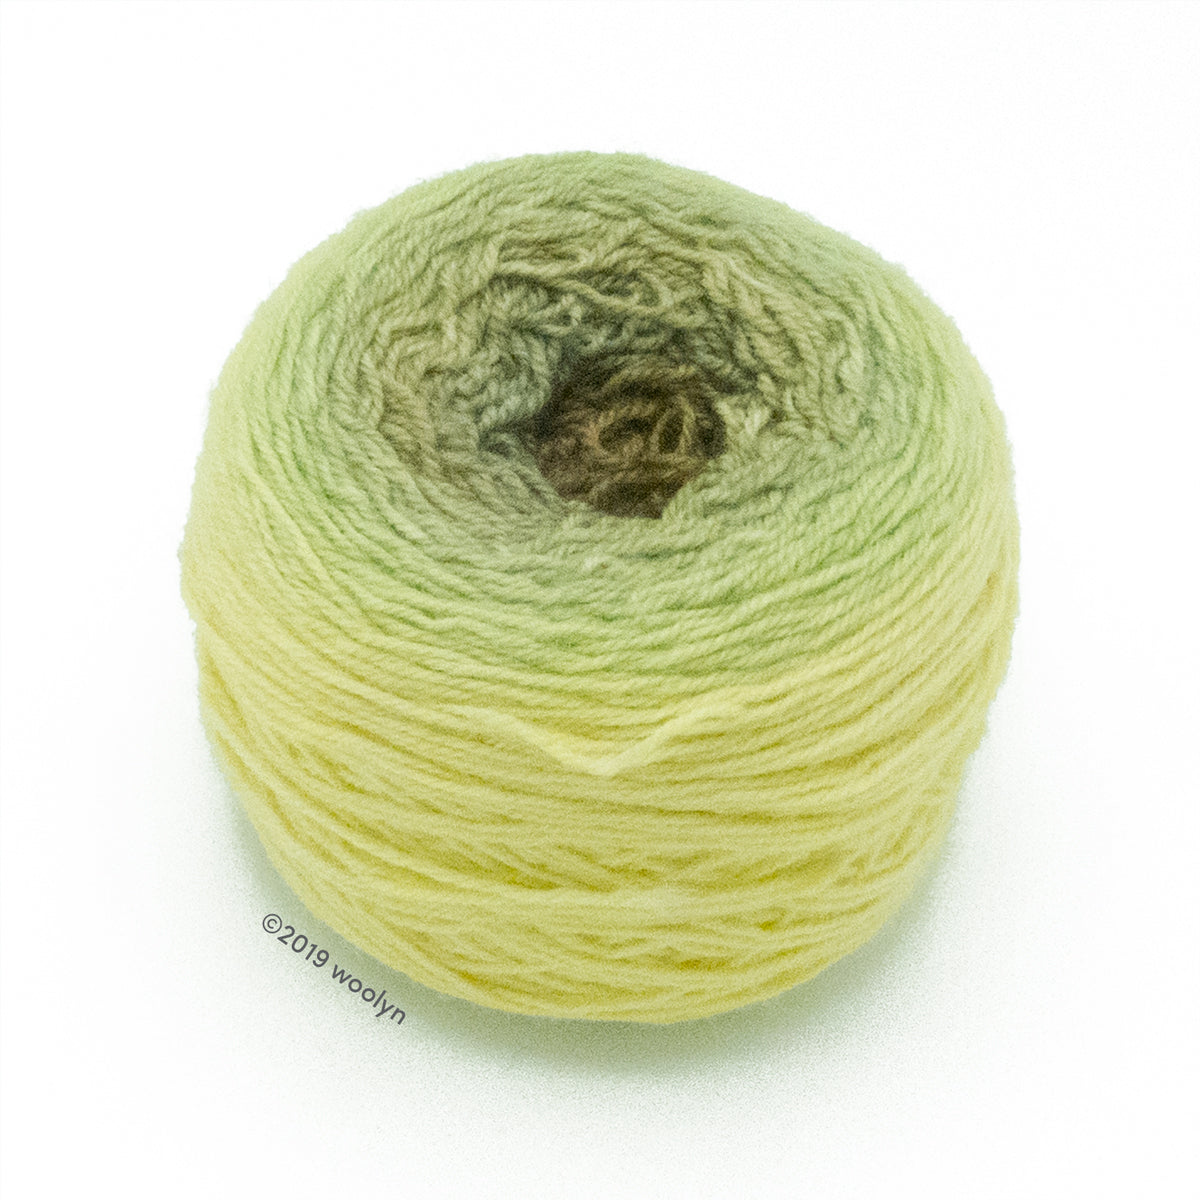 A wound cake of hand dyed fingering weight yarn from Apple Tree Knits..  Yarn is a gradient from pale yellow to pale green to dark greenish brown.